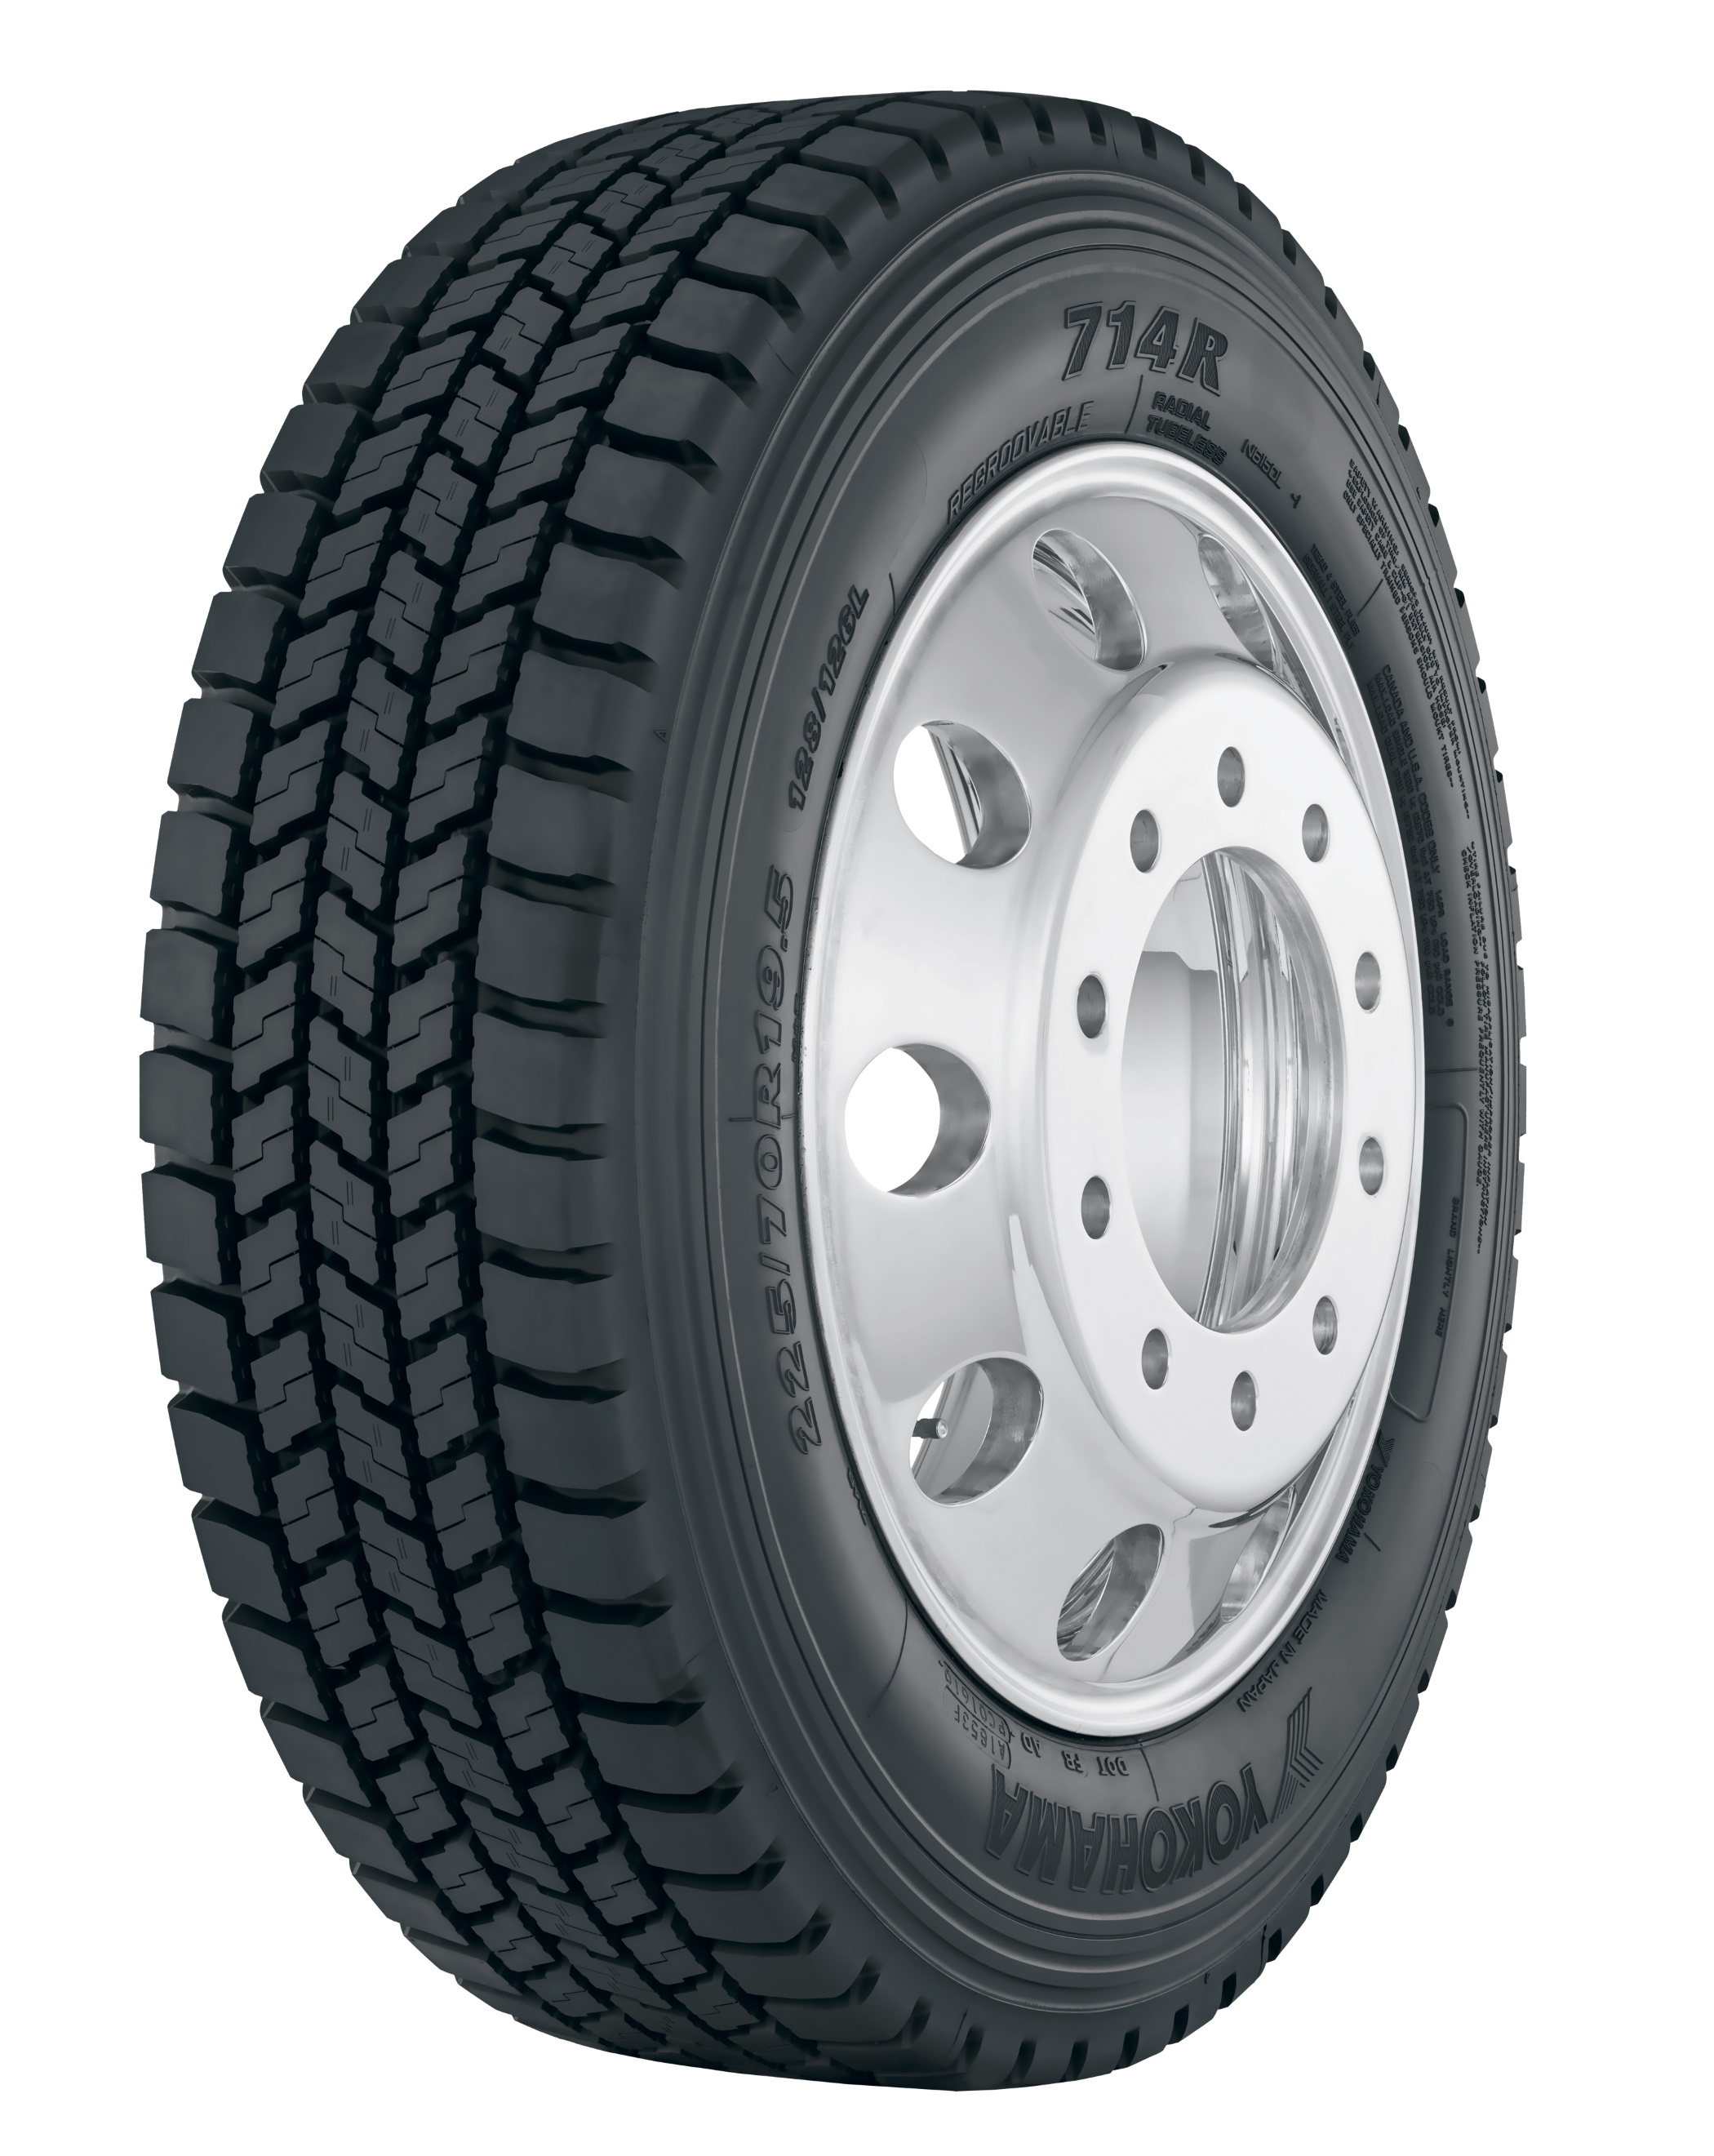 Yokohama Tire's New 714R™ Regional  Pickup/Delivery Tire Now on Sale